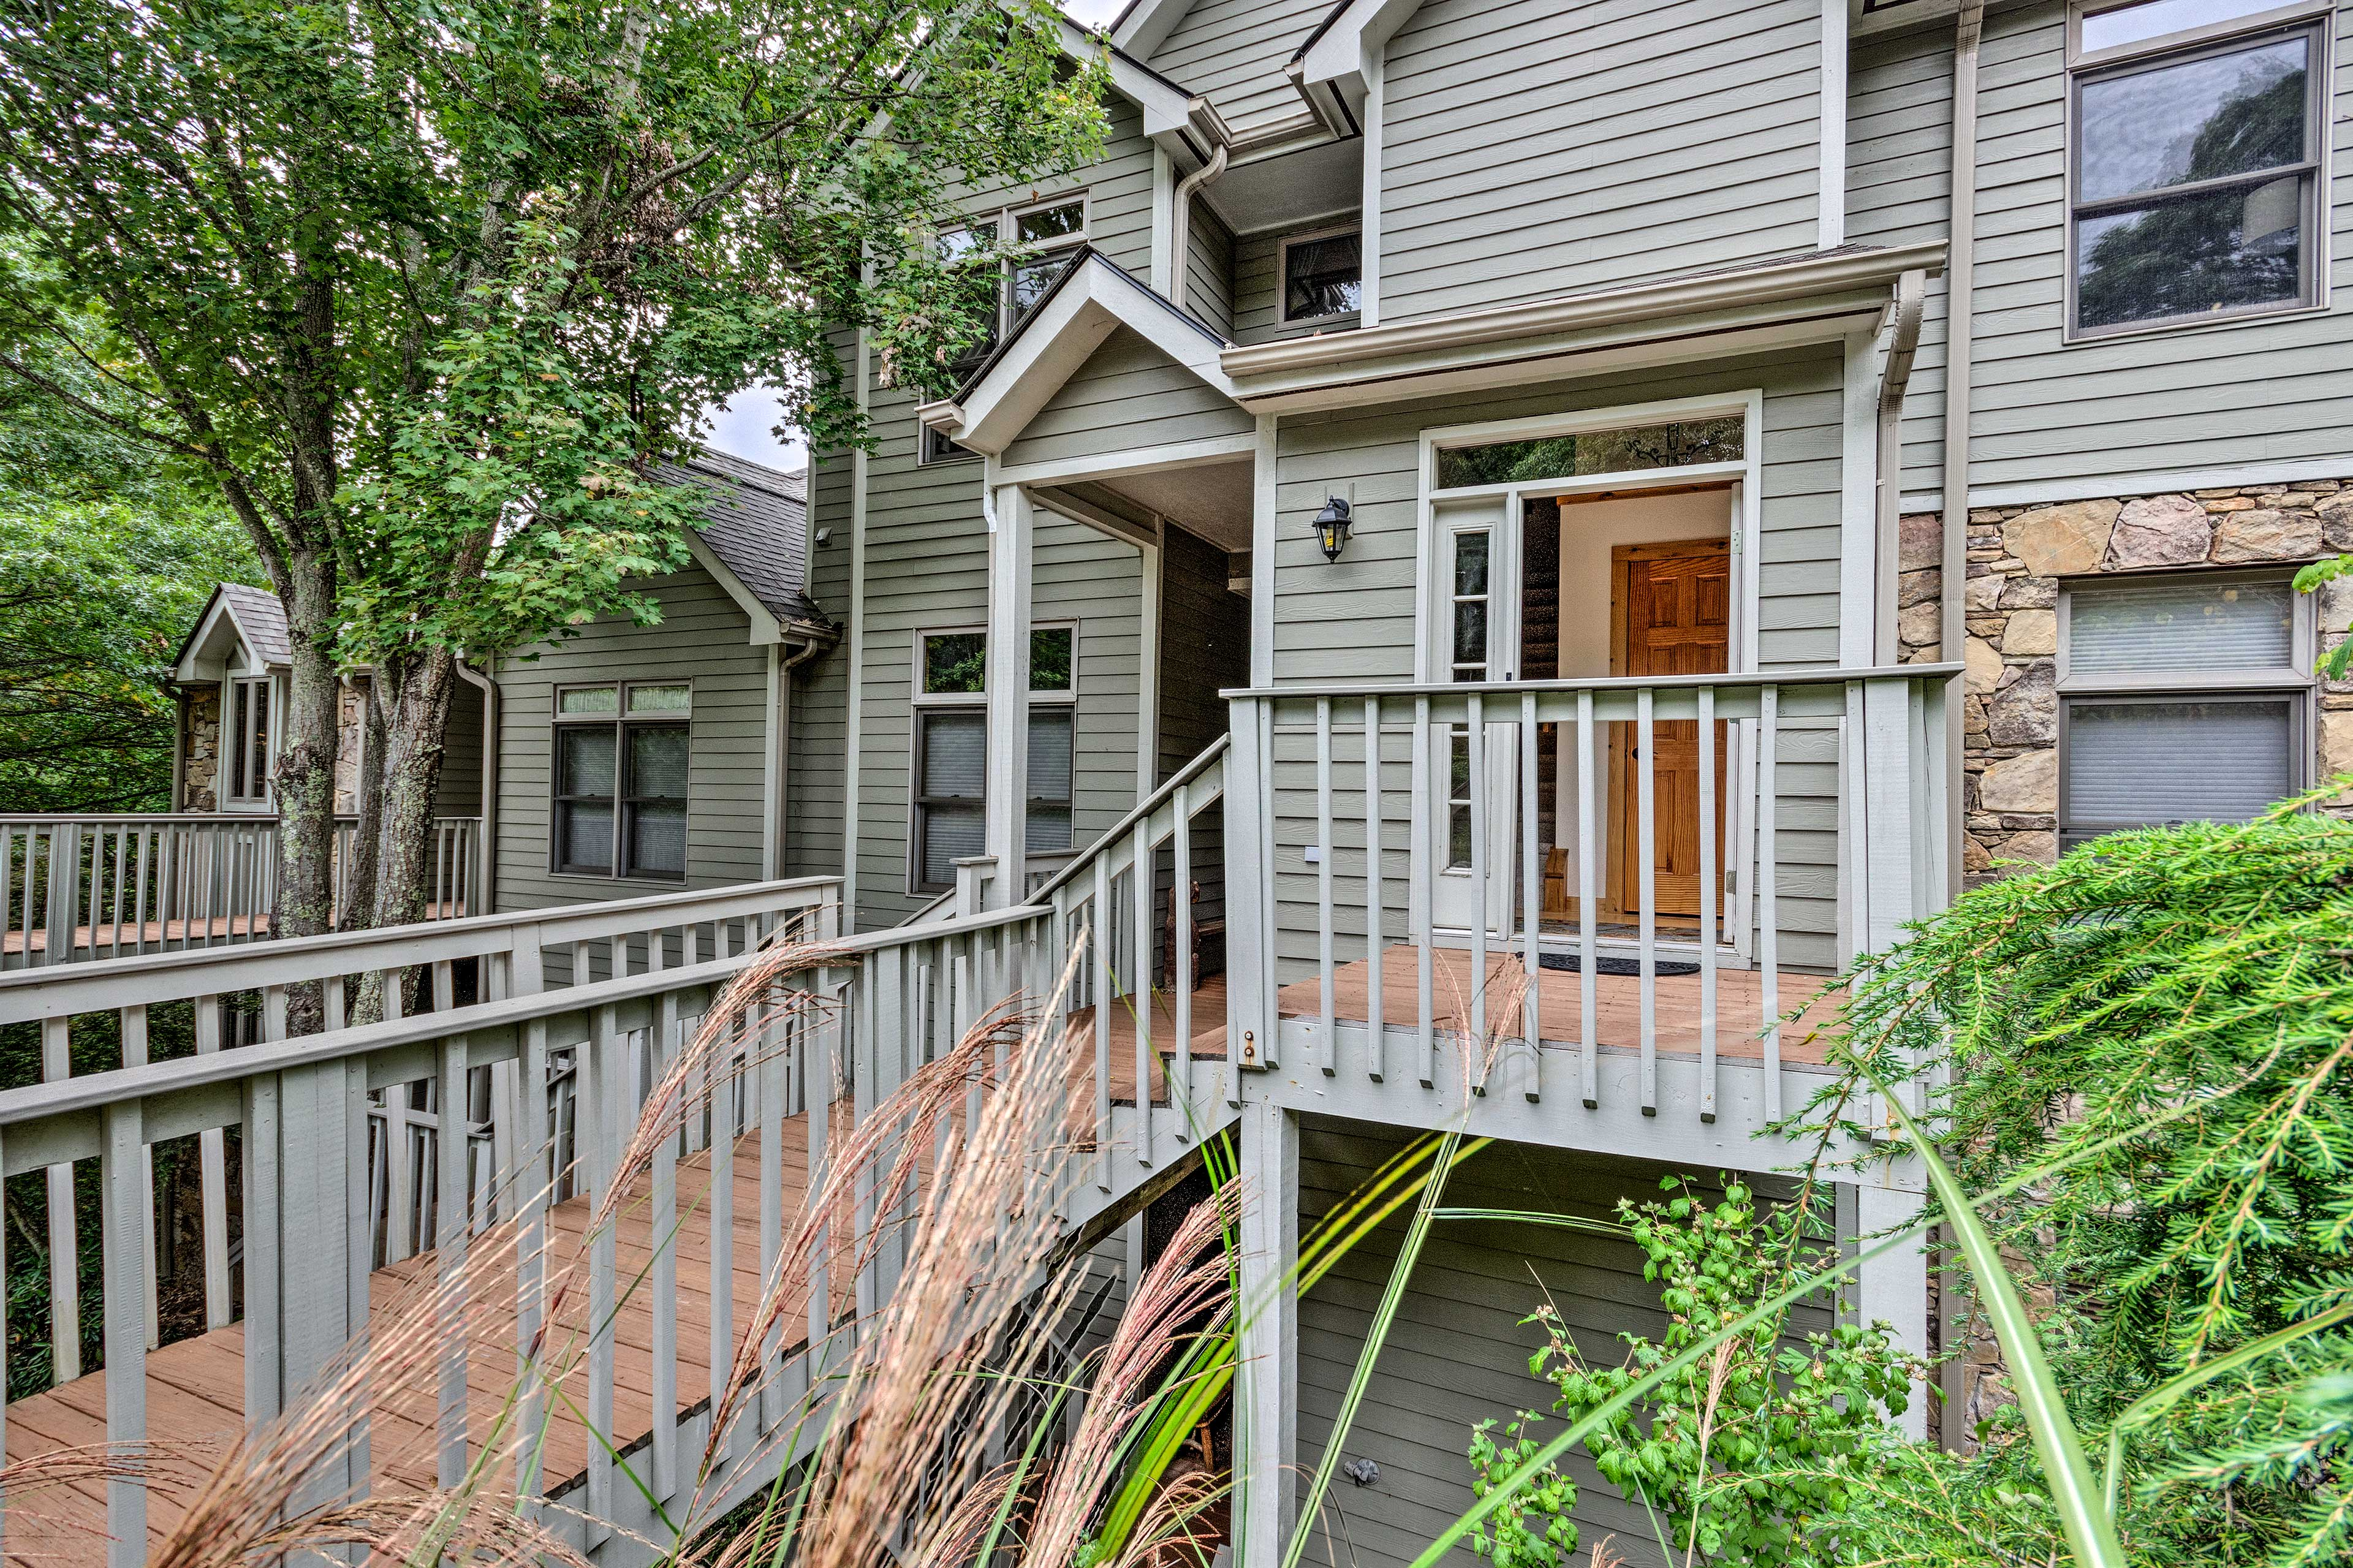 The vacation rental sits less than 7 miles from the Pisgah National Forest!